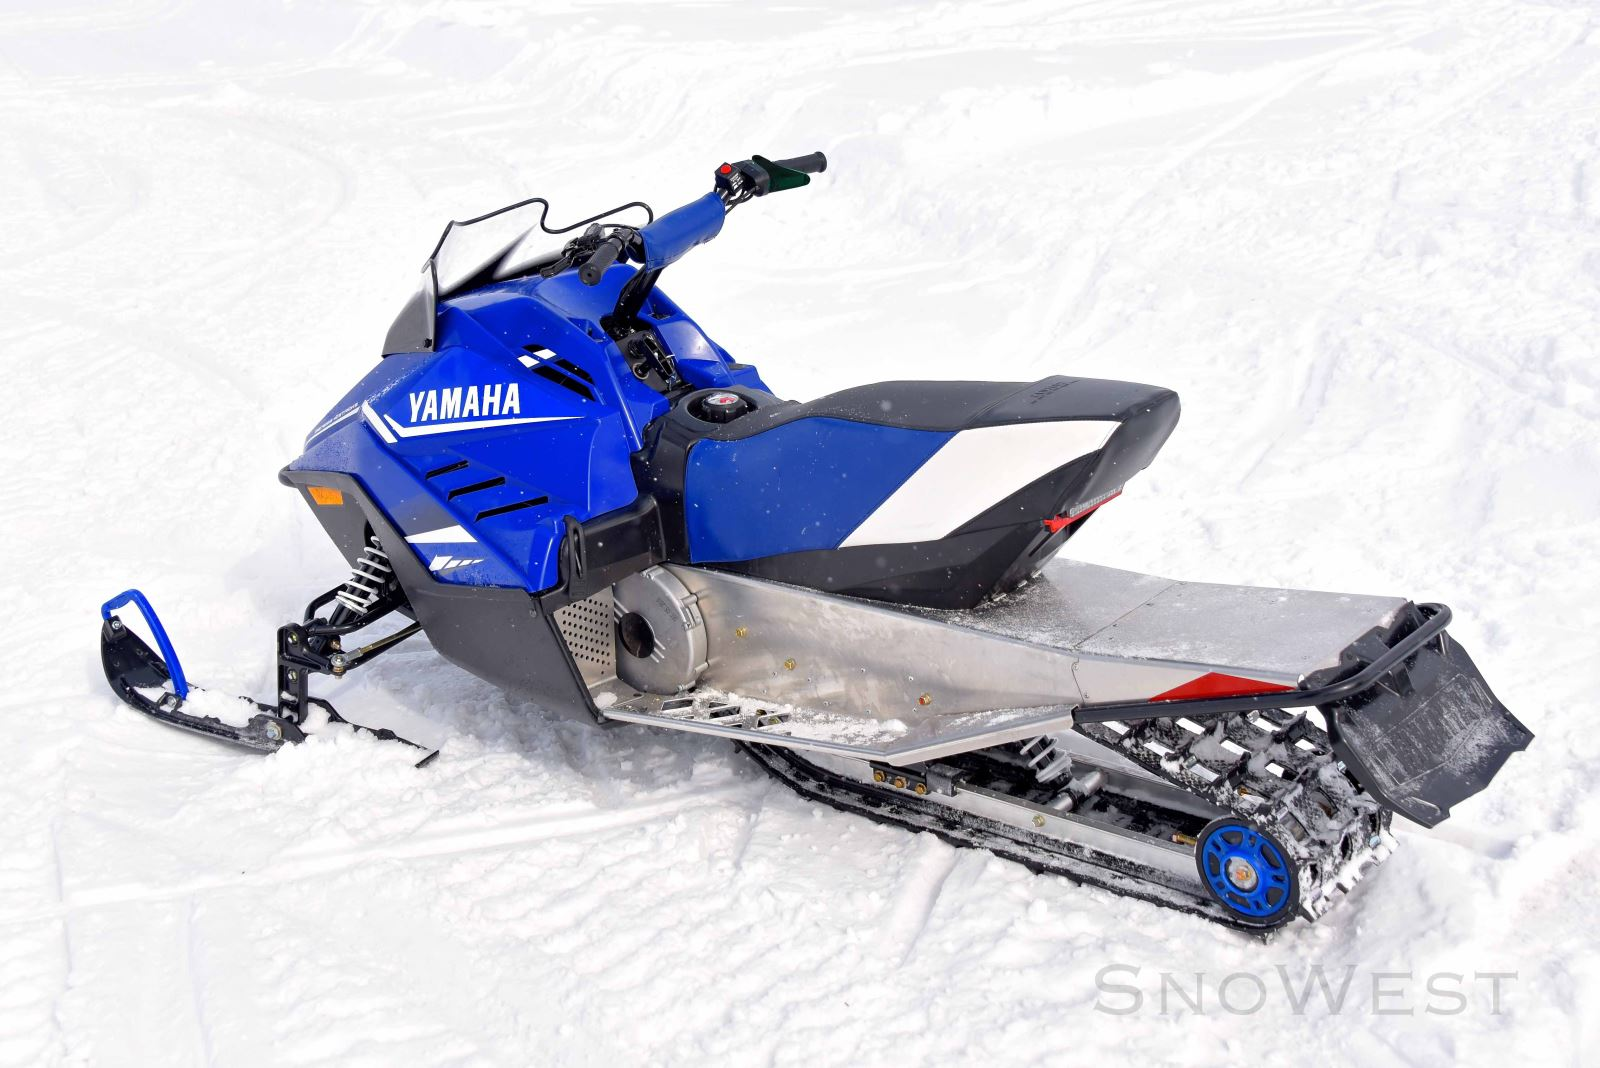 2018 yamaha rebirth of the snoscoot snowest magazine